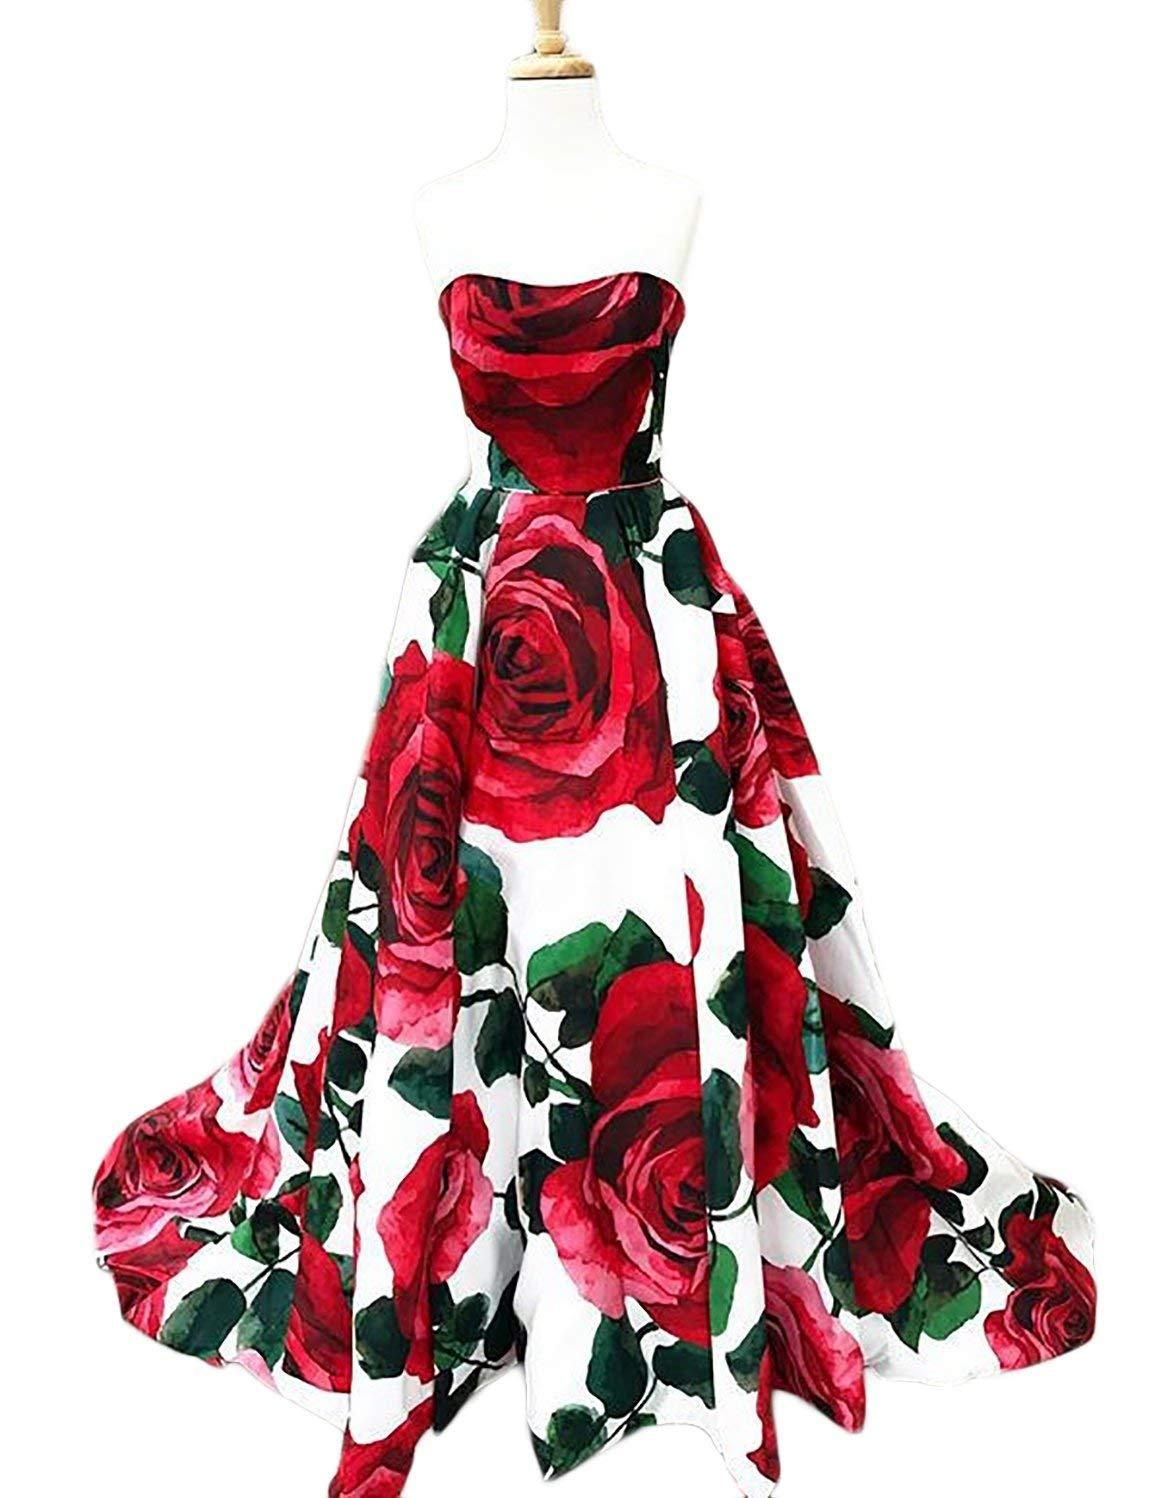 Primary image for Womens Floral Print Prom Dresses Strapless Long Evening Party Gowns Formal Dress